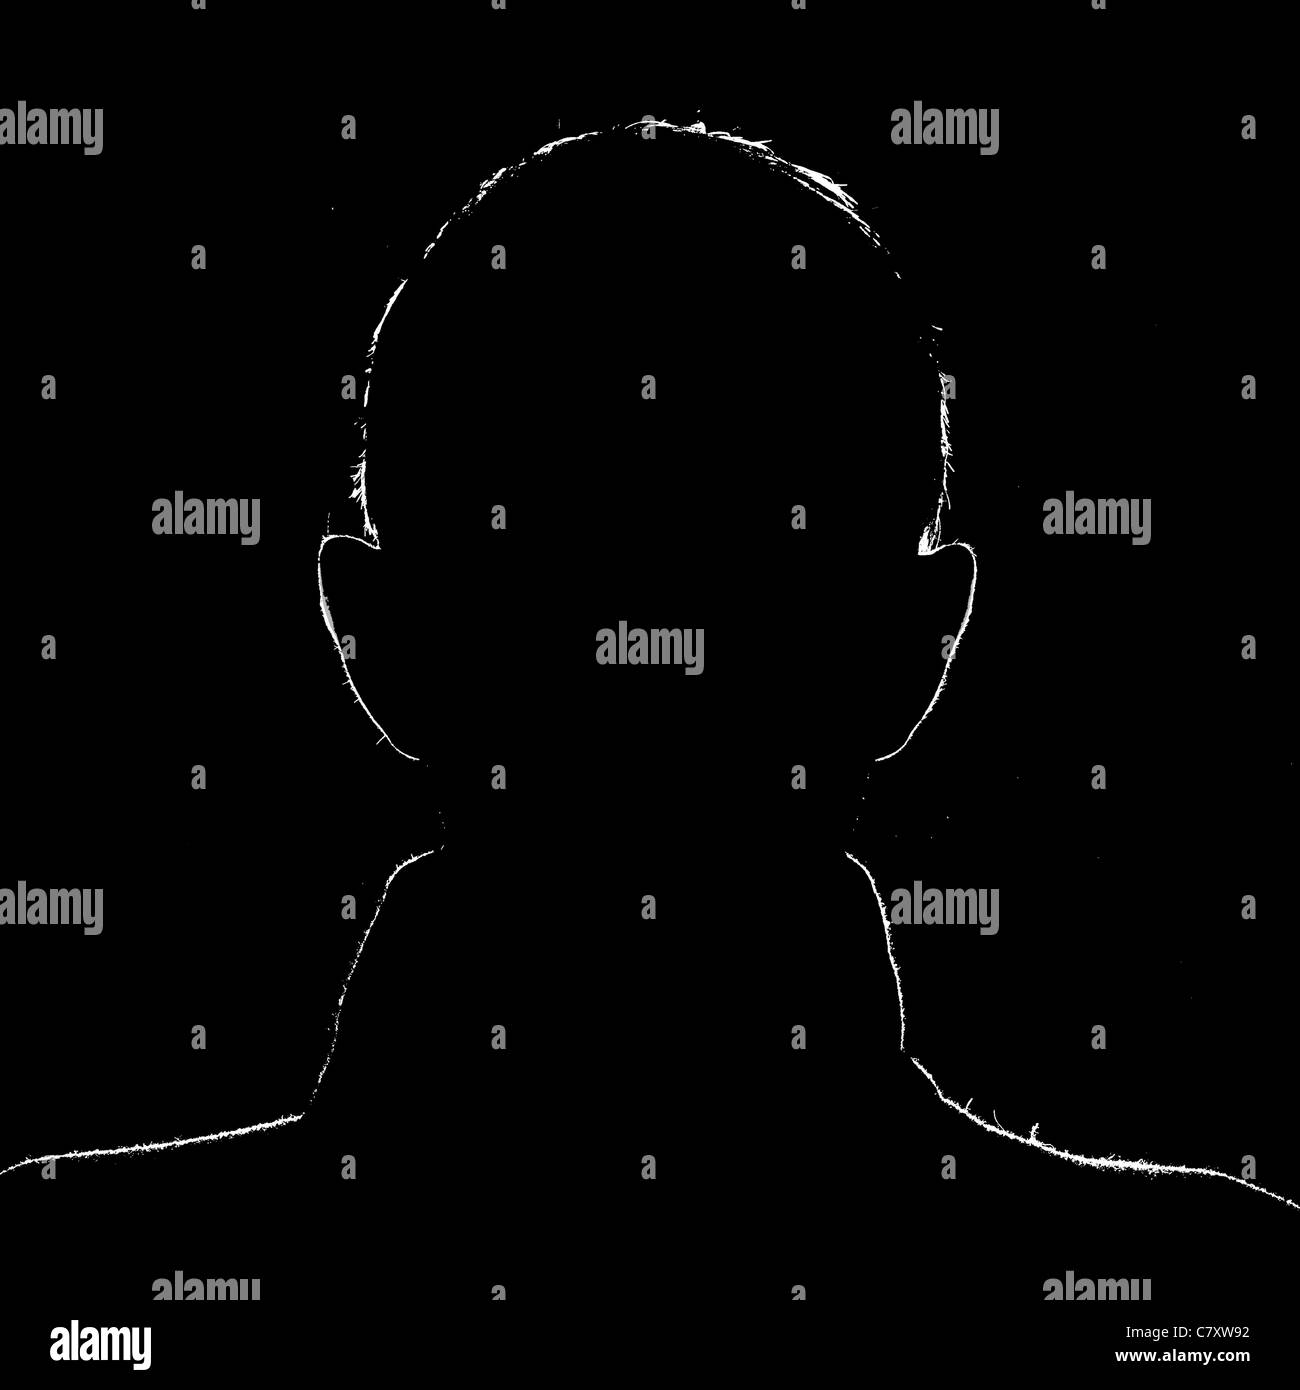 Sillhouette of a man on black background set in a 1:1 image with the man outlined in white. - Stock Image